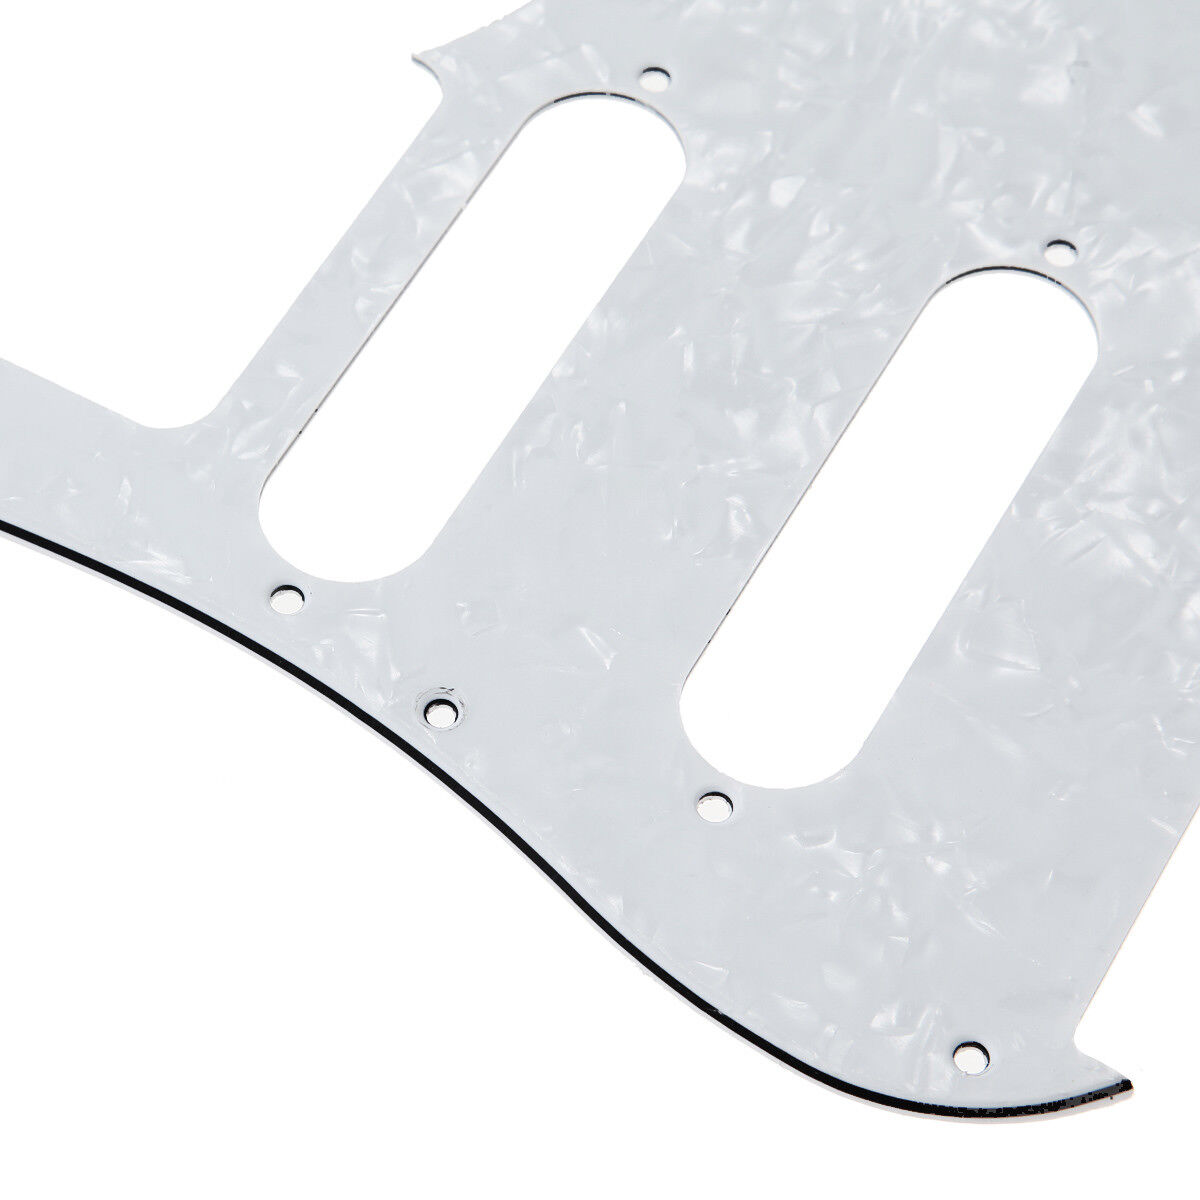 yamaha pacifica 112v wiring diagram of house white pearl guitar pickguard for